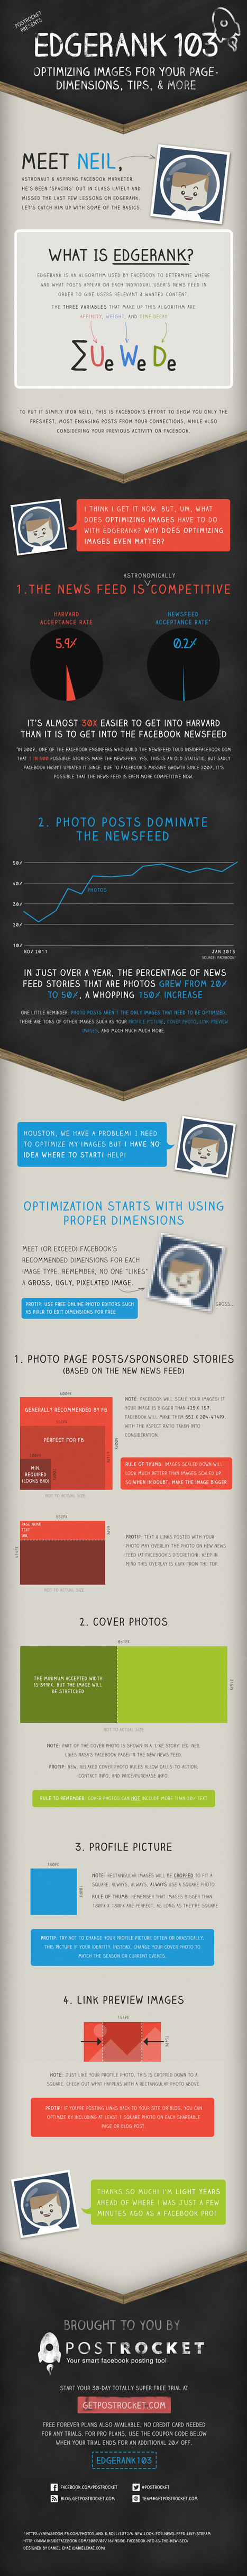 Infographic: Best Practices for Optimizing Facebook Photos | Social Media, Marketing and Promotion | Scoop.it